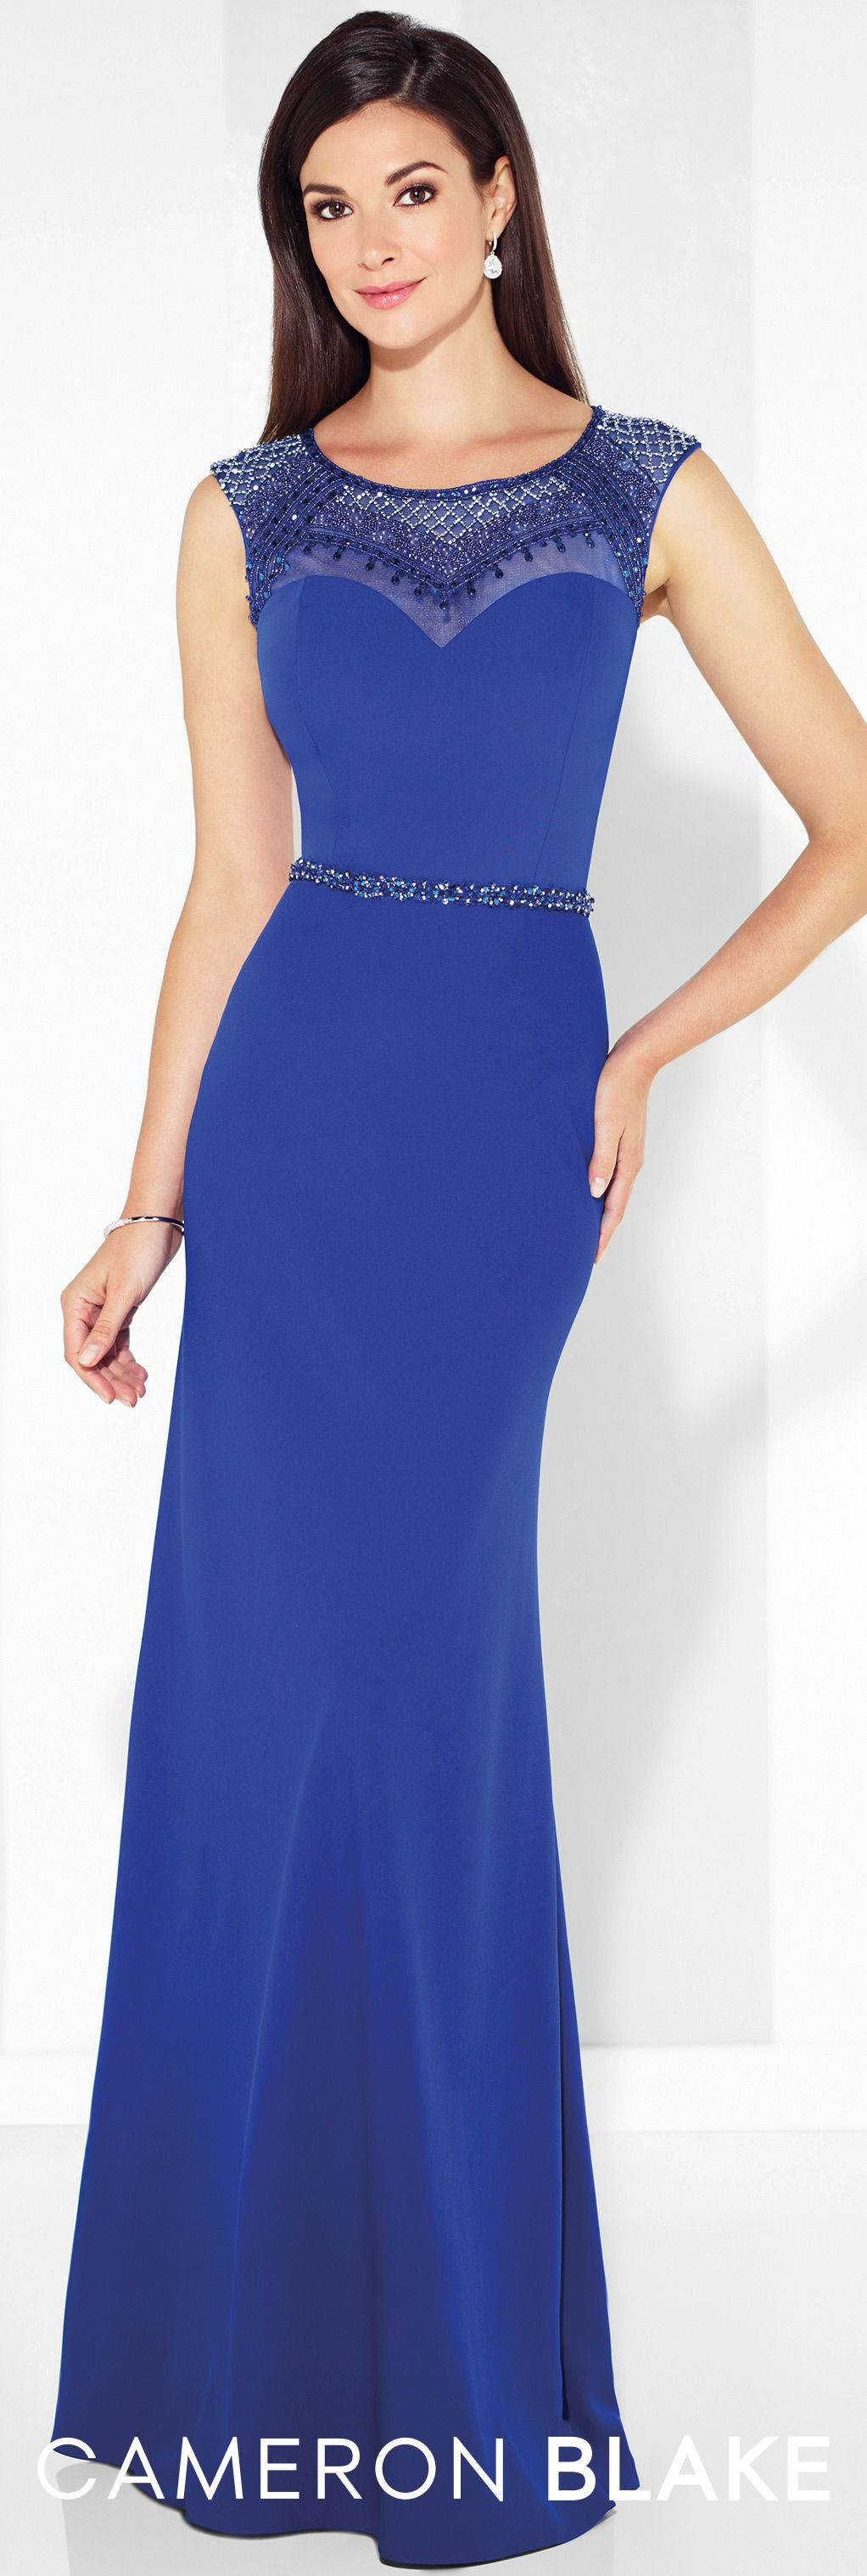 twill slim a-line gown with illusion cap sleeves - cameron blake